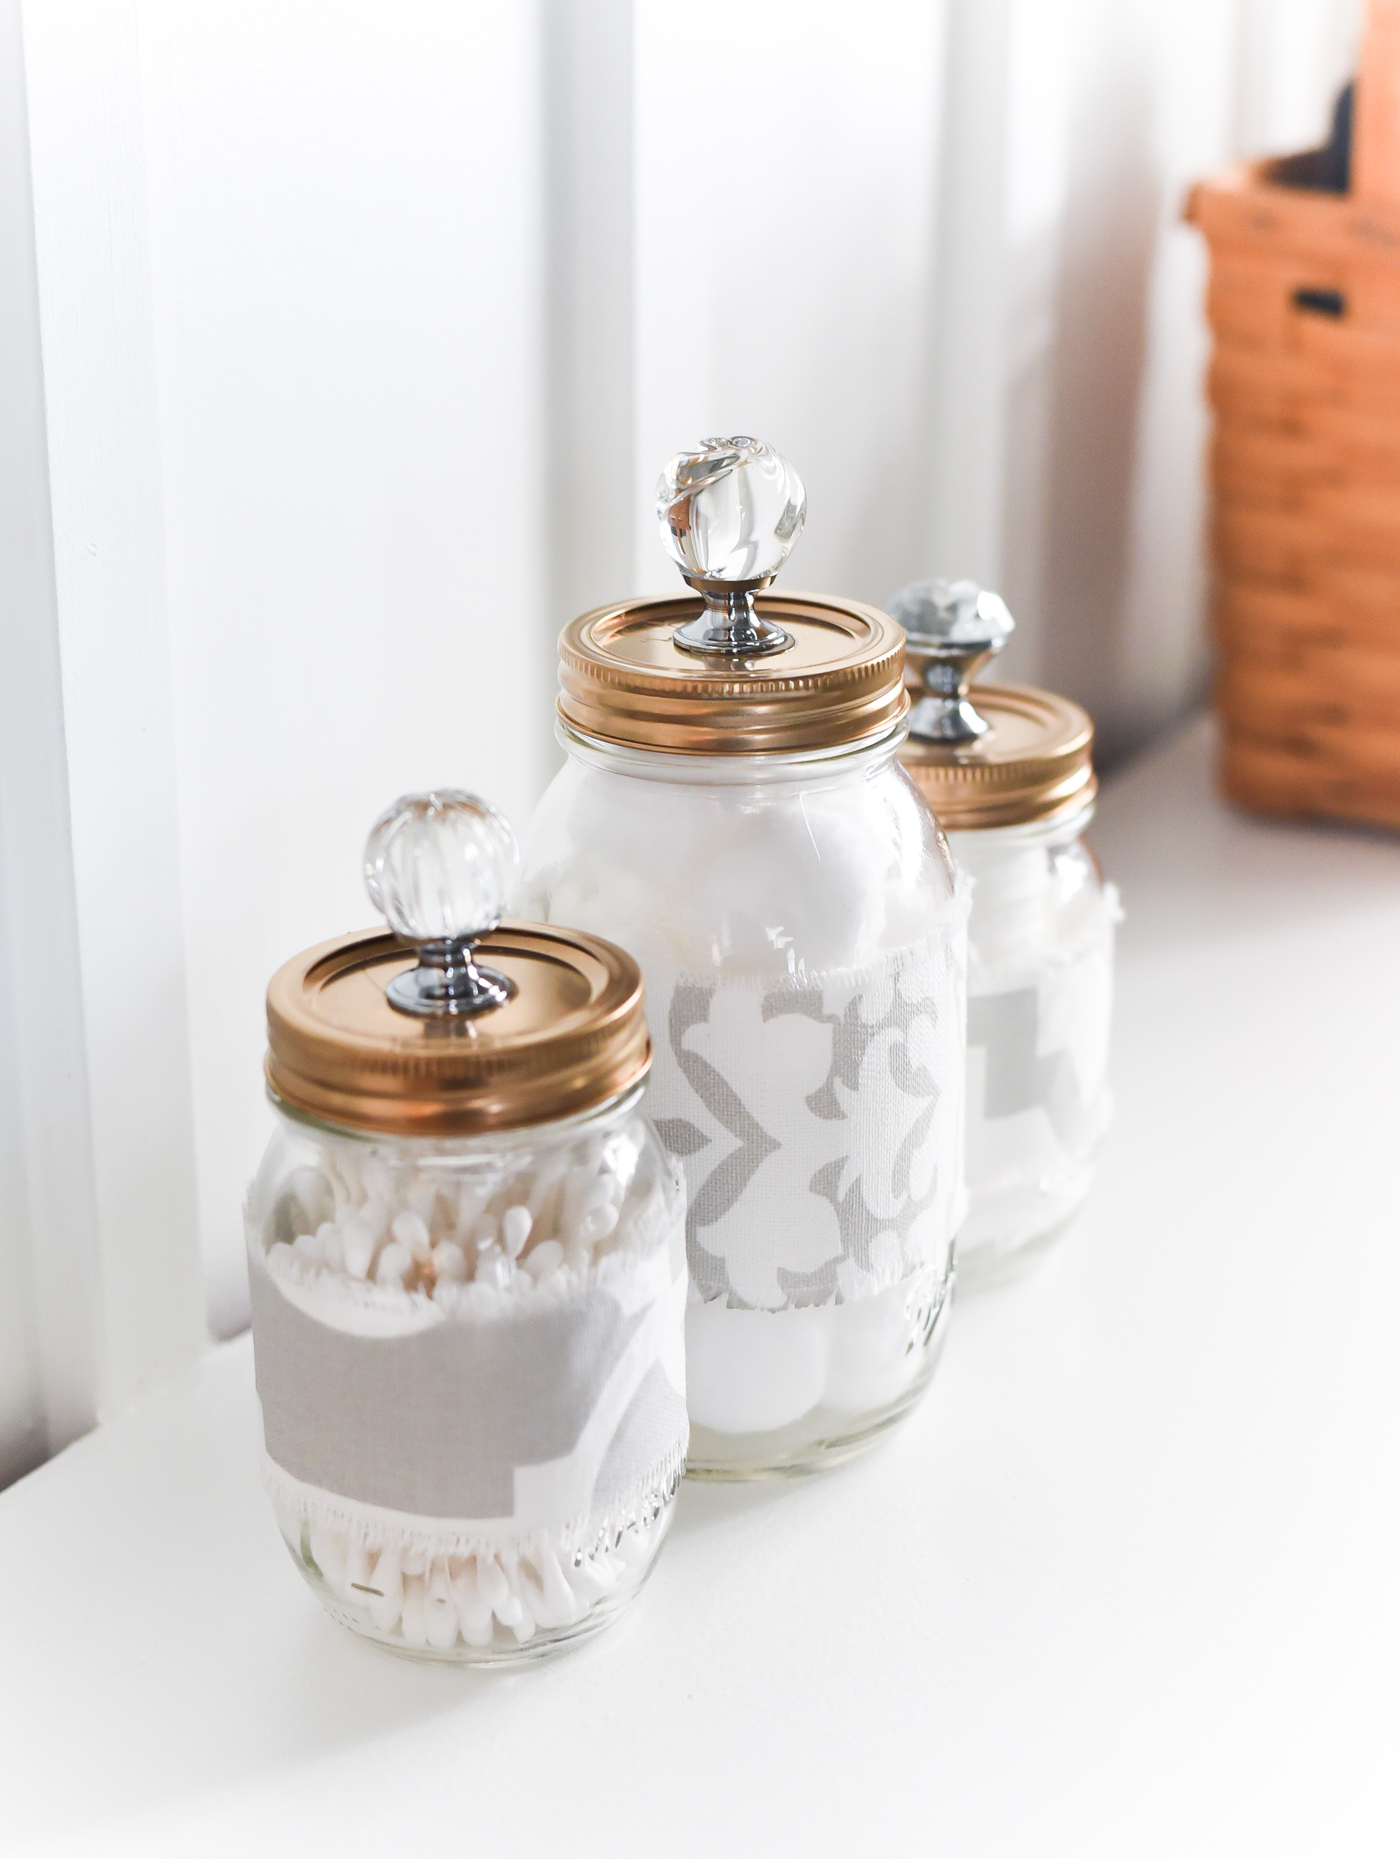 Mason Jar Cozies Bathroom Storage - Mason Jar Gold Lids with Crystal Glass Knobs